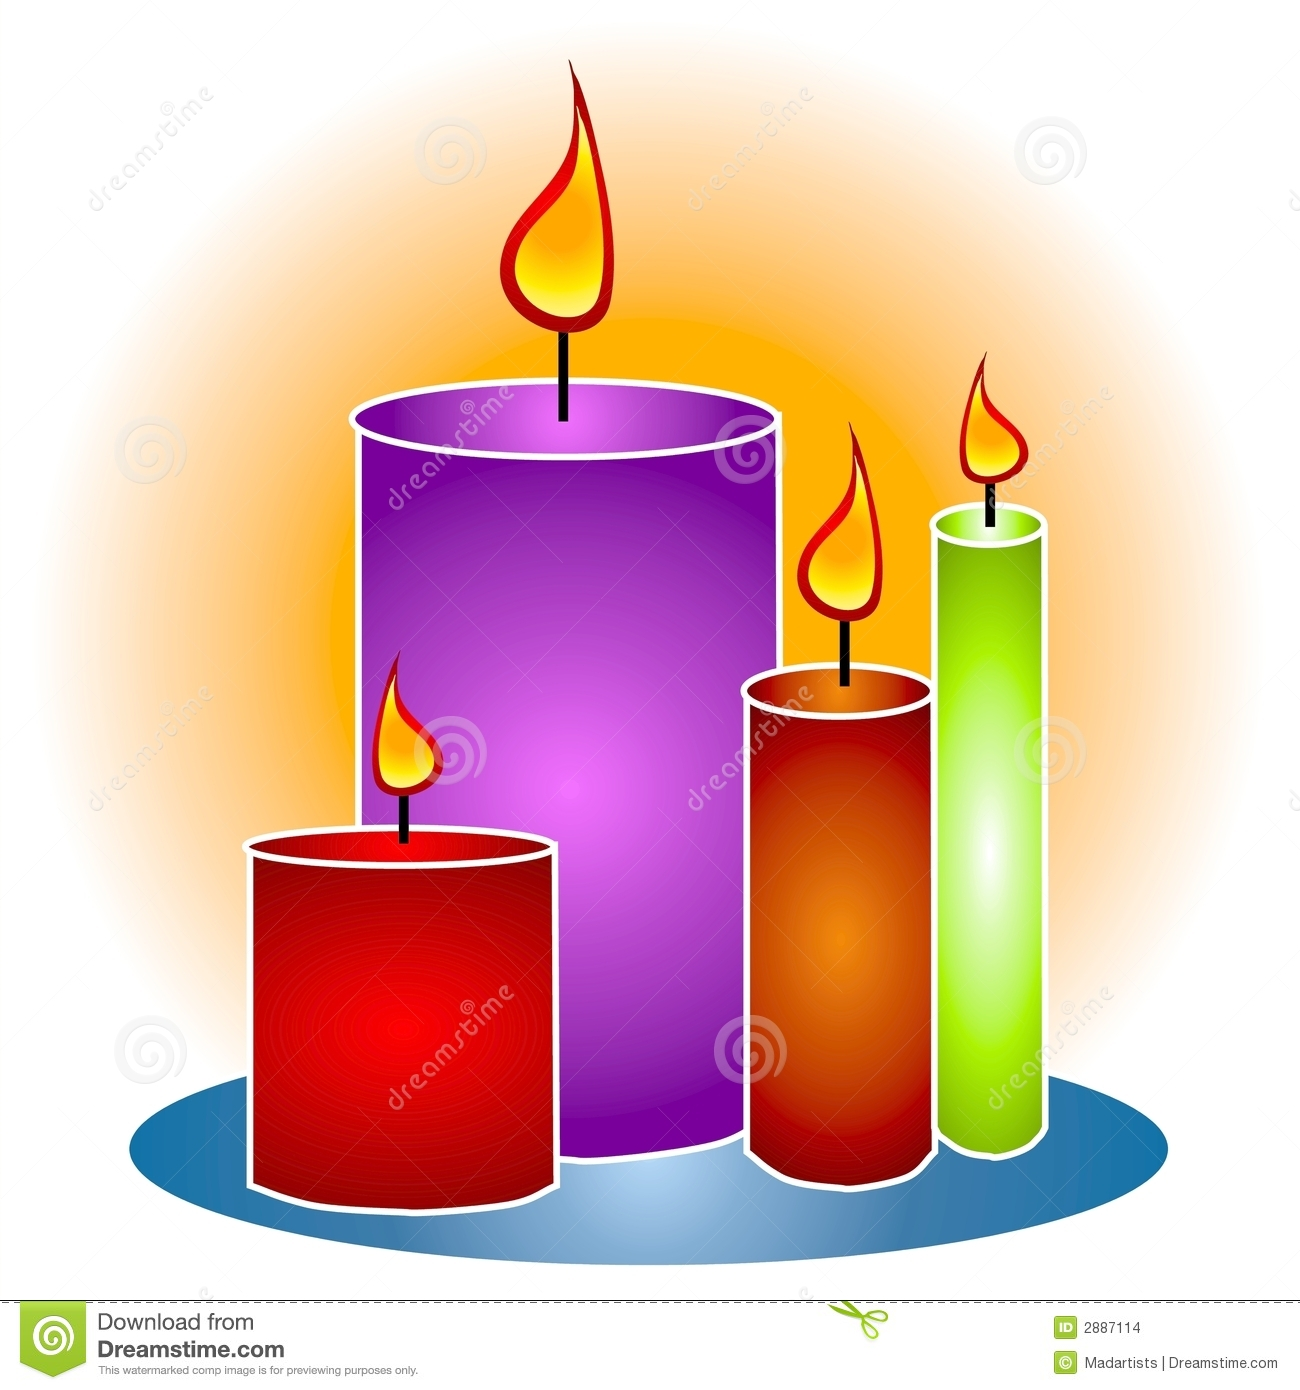 Lit decorative stock illustration. Candles clipart picture free library